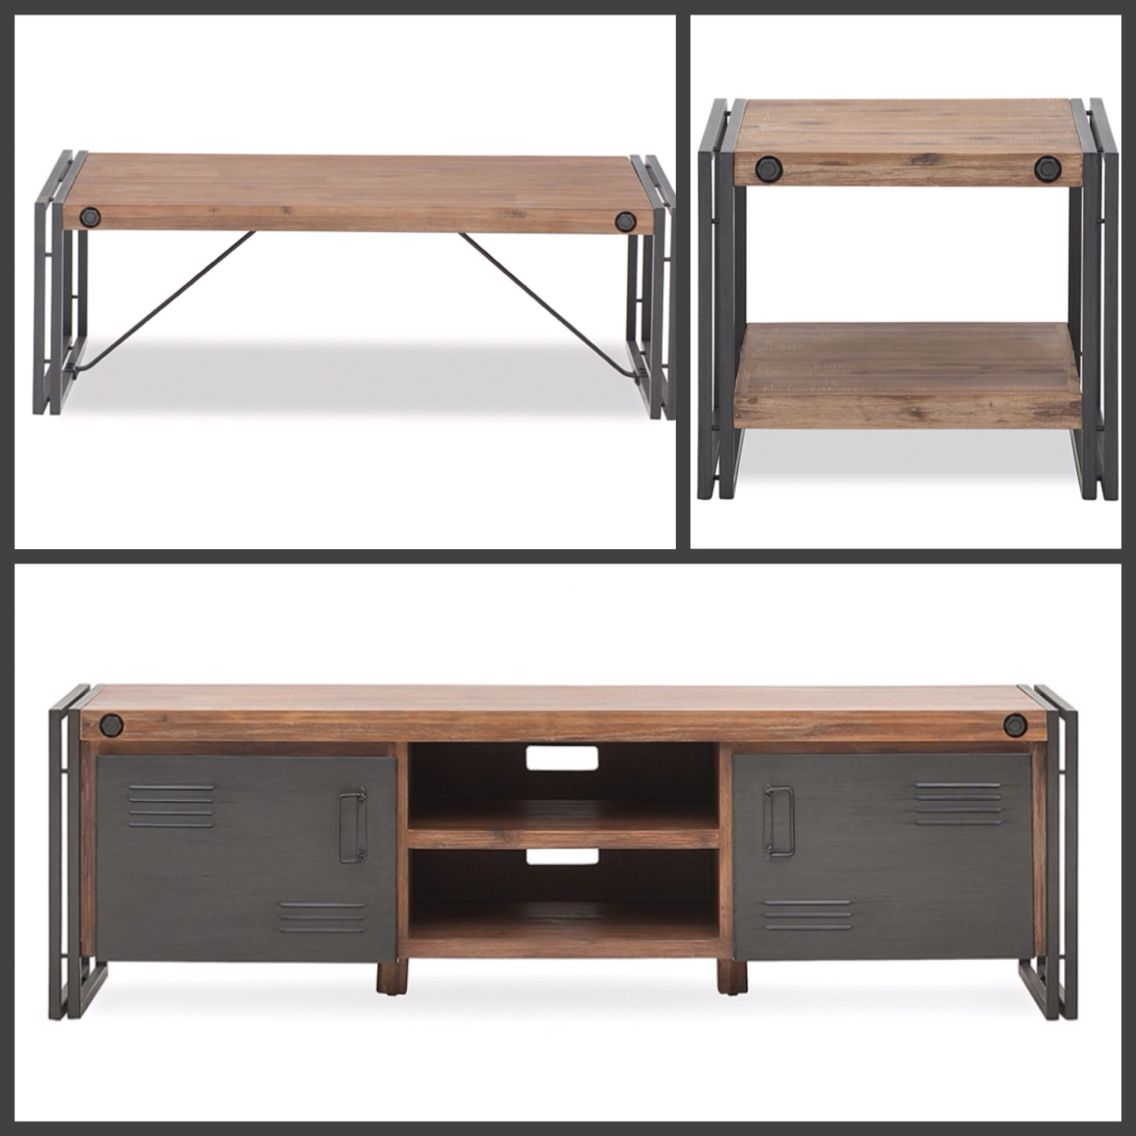 Super amart city2 coffee table lamp table and entertainment unit super amart city2 coffee table lamp table and entertainment unit geotapseo Gallery